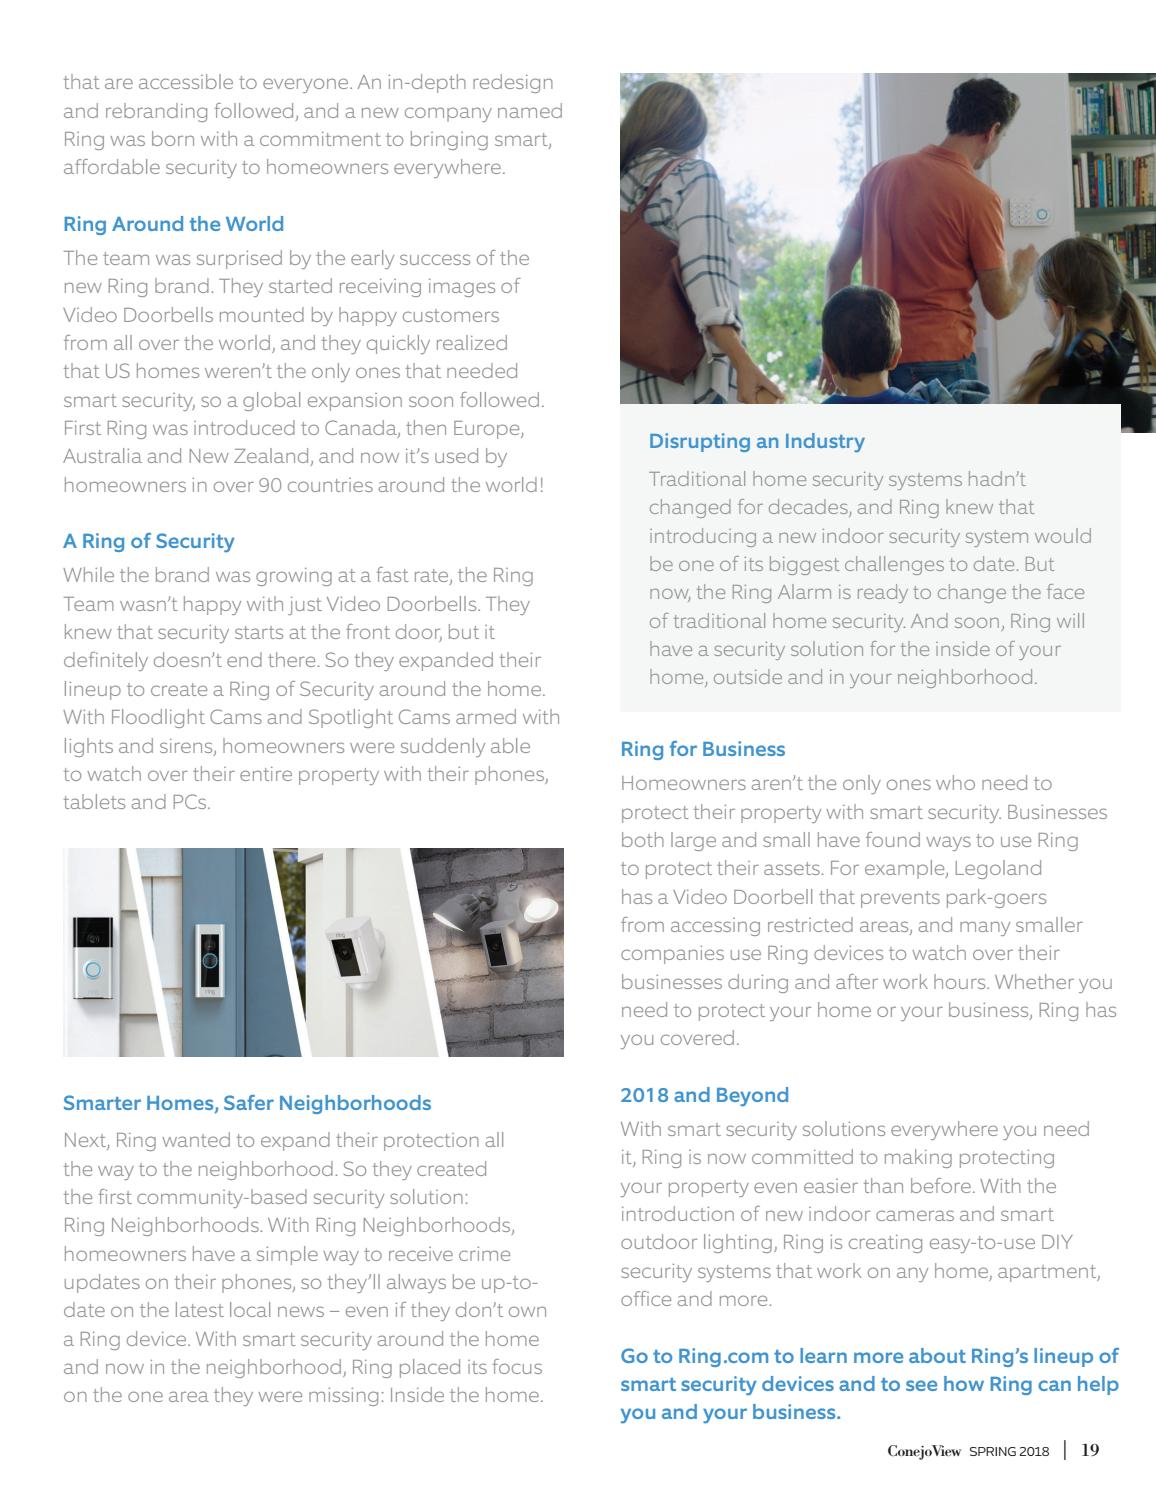 ConejoView Spring 2018 by ConejoView - Greater Conejo Valley